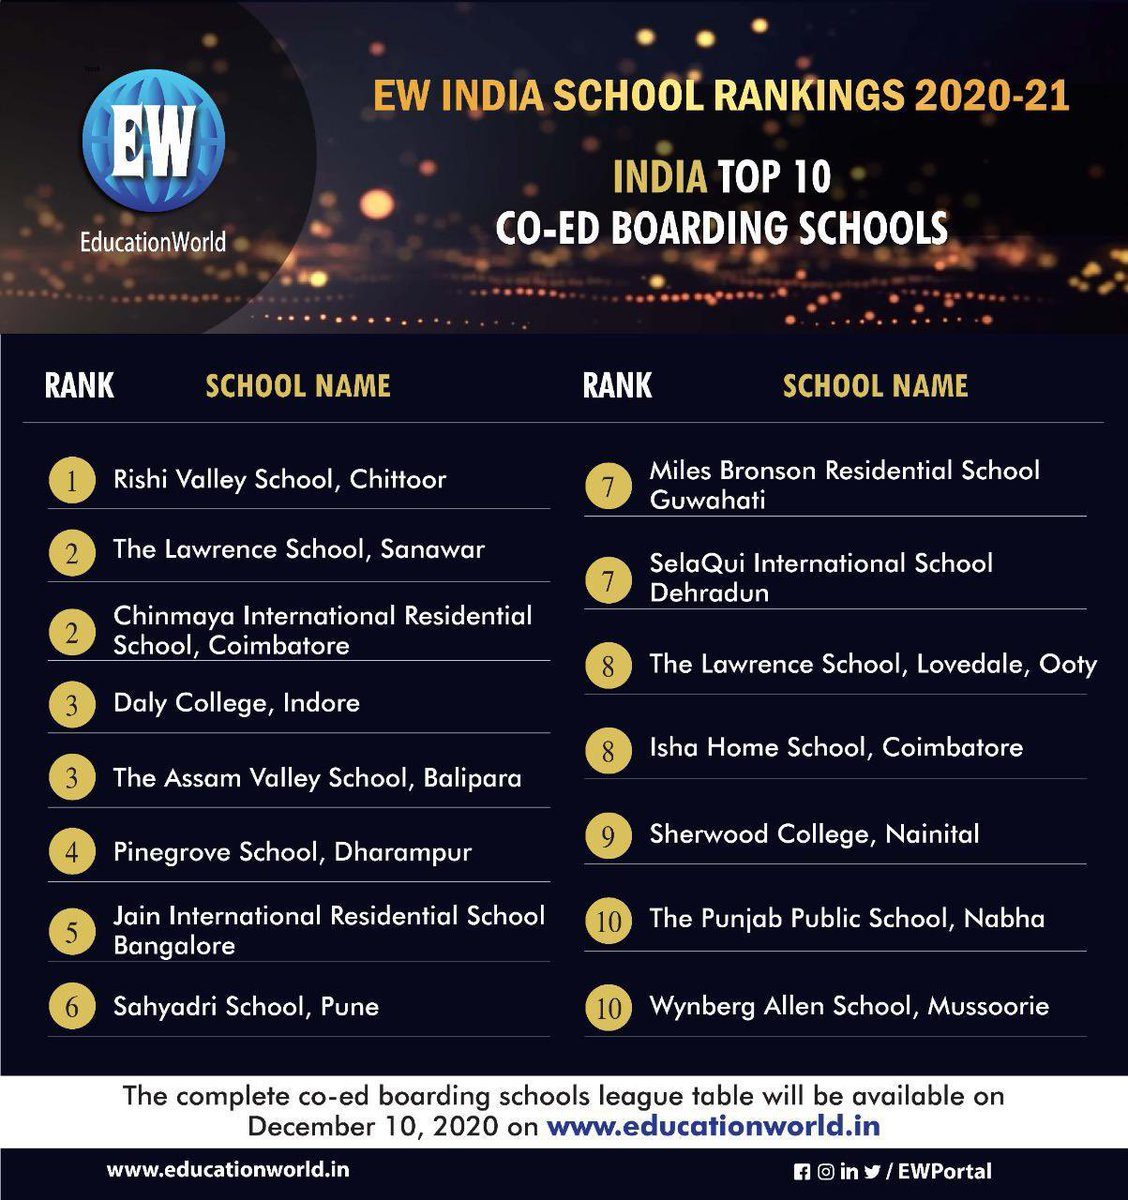 .@LawrenceSanawar ranked number 2 on the EW India School Rankings! Proud to be a part of this family. Looking forward to the 175th anniversary celebrations of this prestigious School!